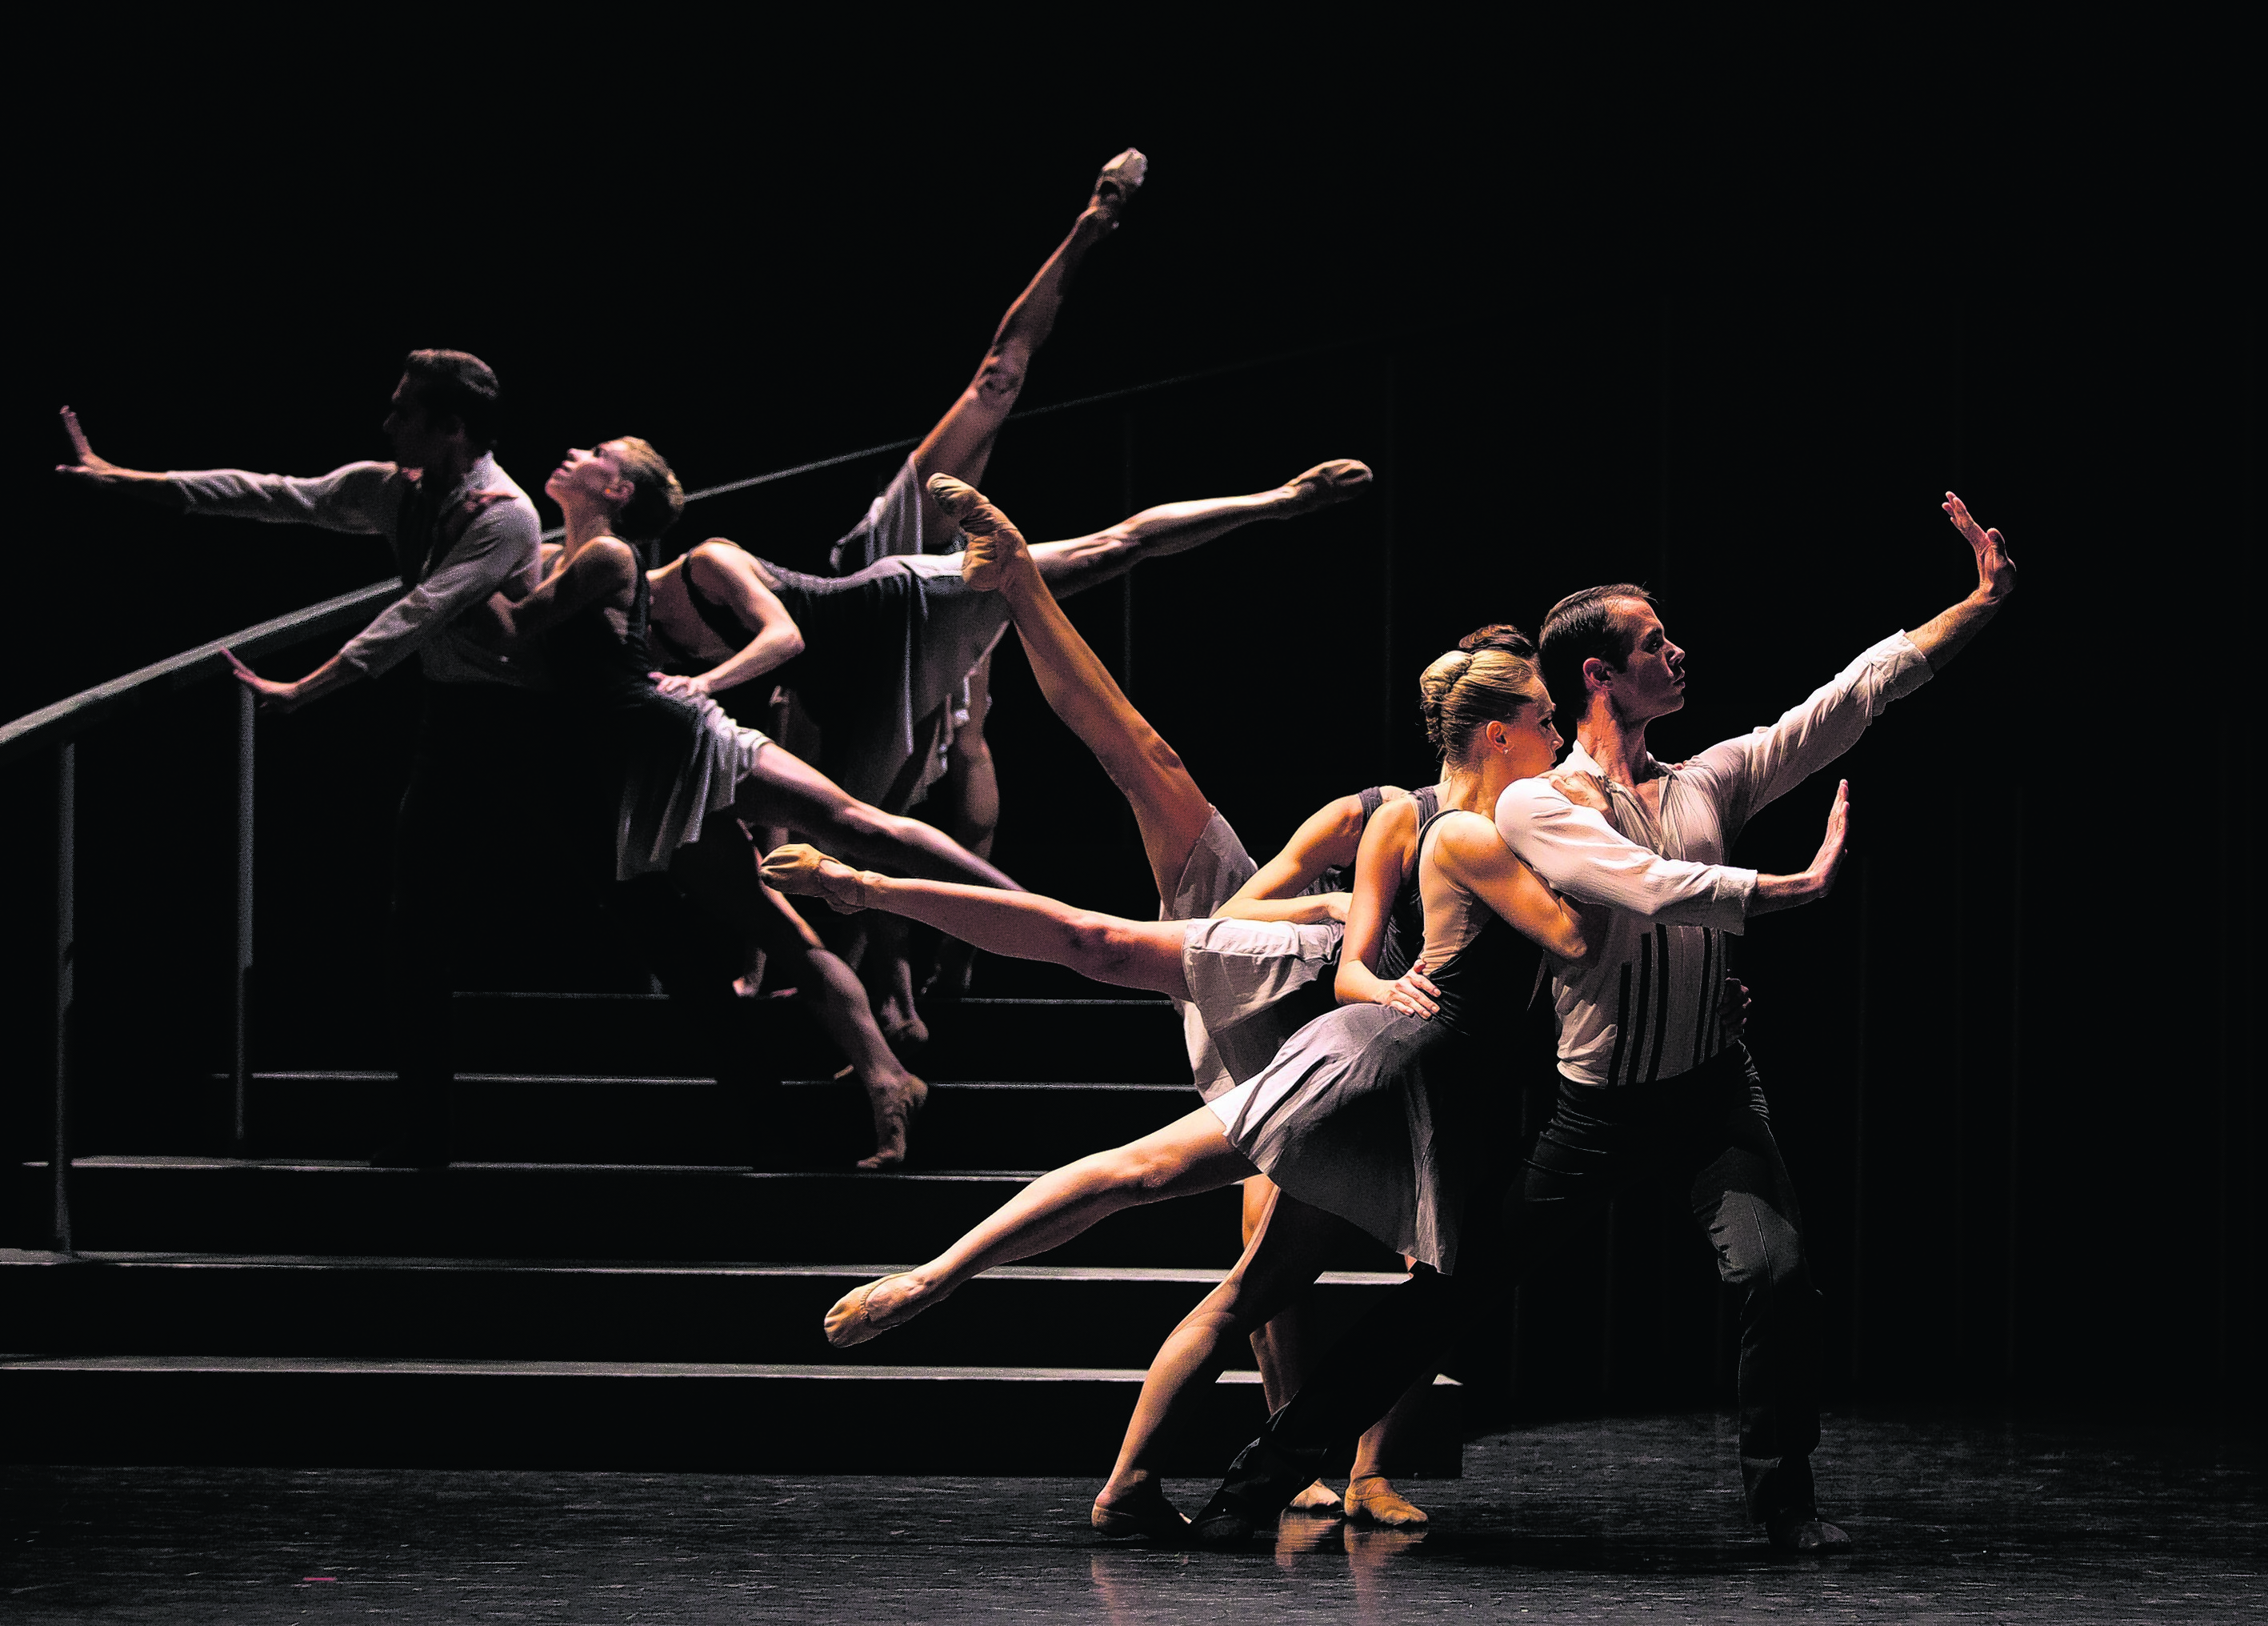 Scottish Ballet will perform Motion of Displacement and Elsa Canasta